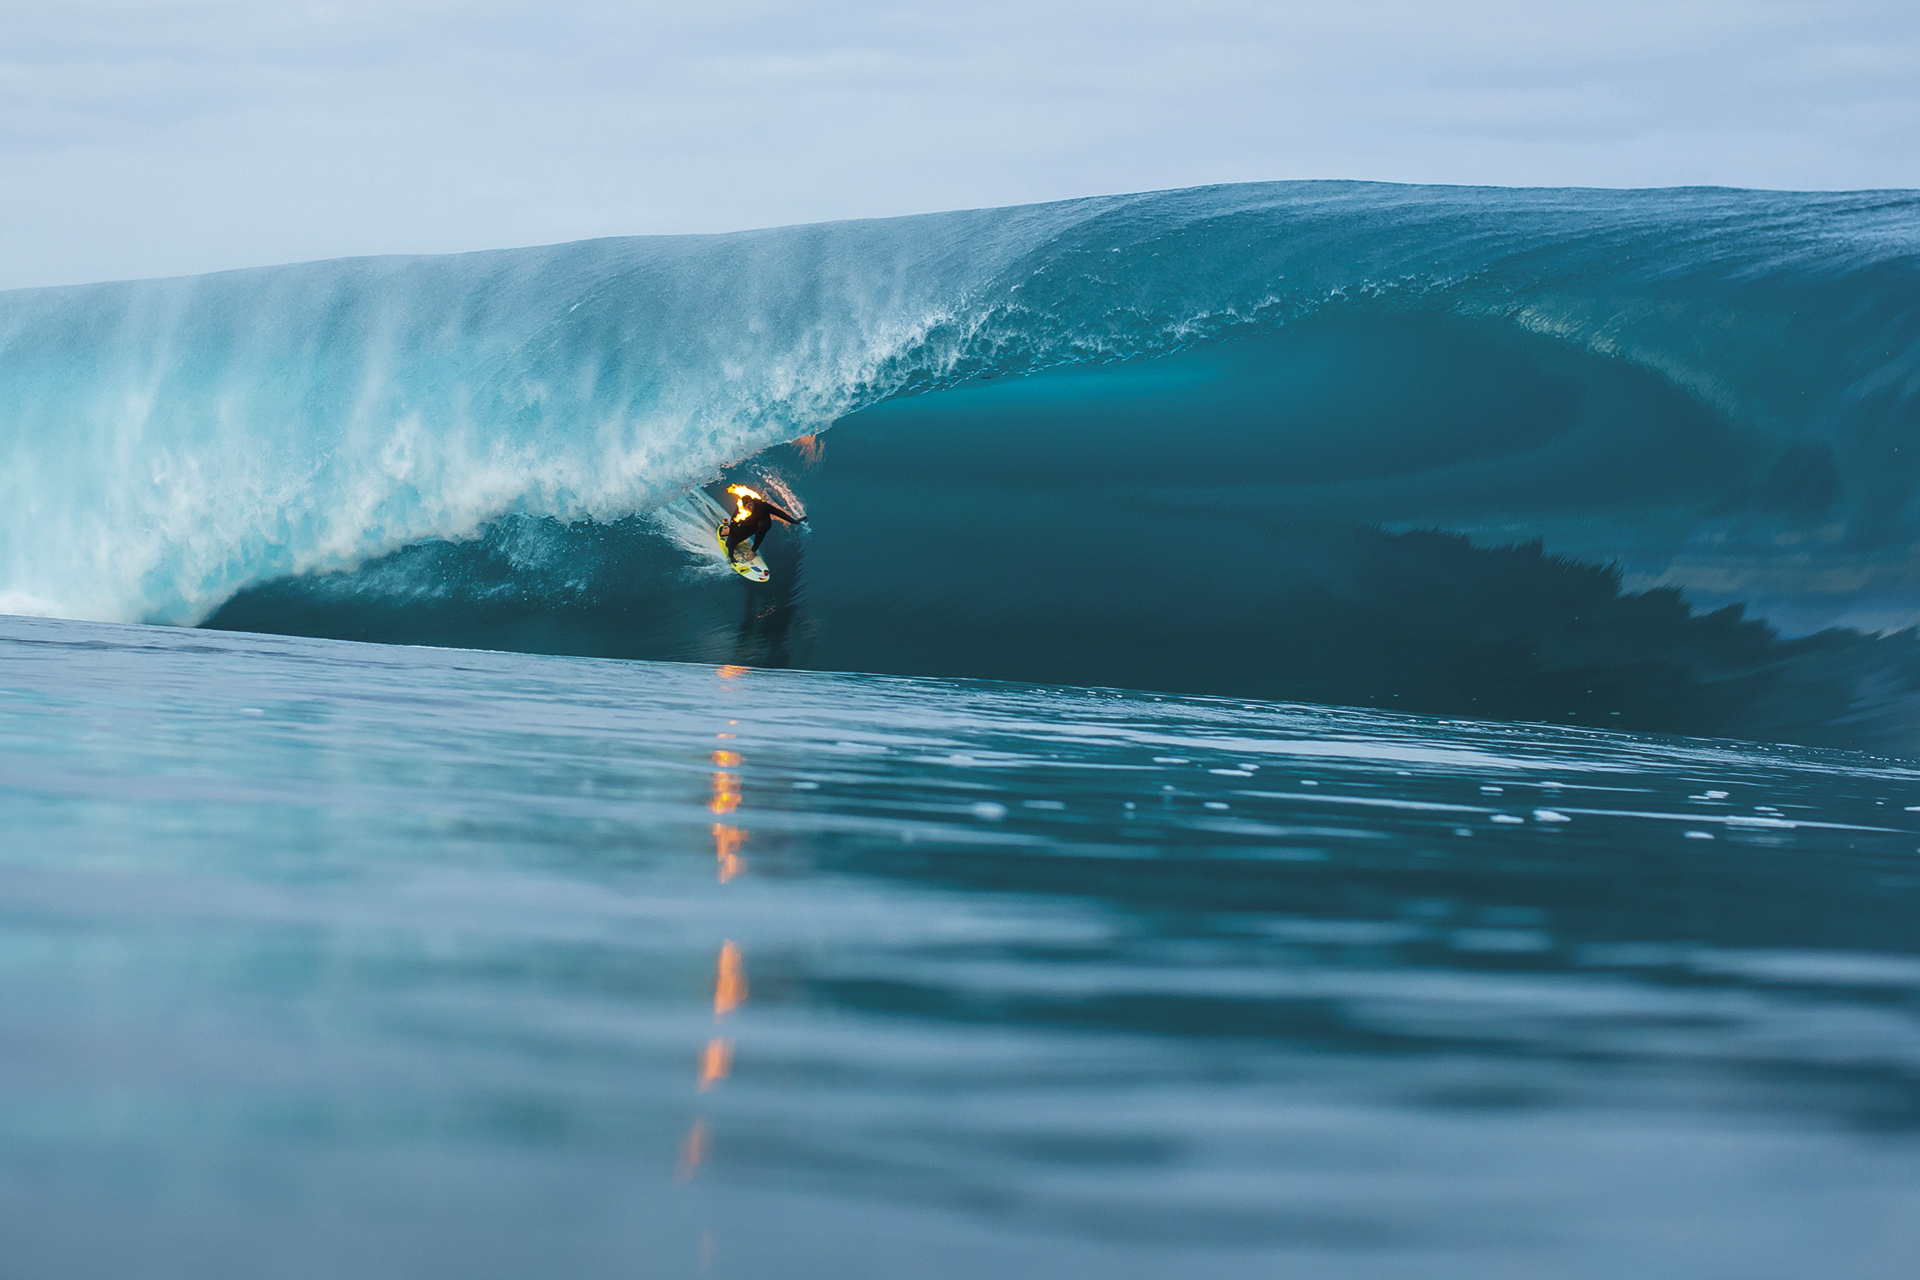 Jamie O'Brien surfs a barrel whilst lit on fire, at Teahupoo, Tahiti on 22 July, 2015. // Ben Thouard / Red Bull Content Pool // P-20150723-00226 // Usage for editorial use only // Please go to www.redbullcontentpool.com for further information. //